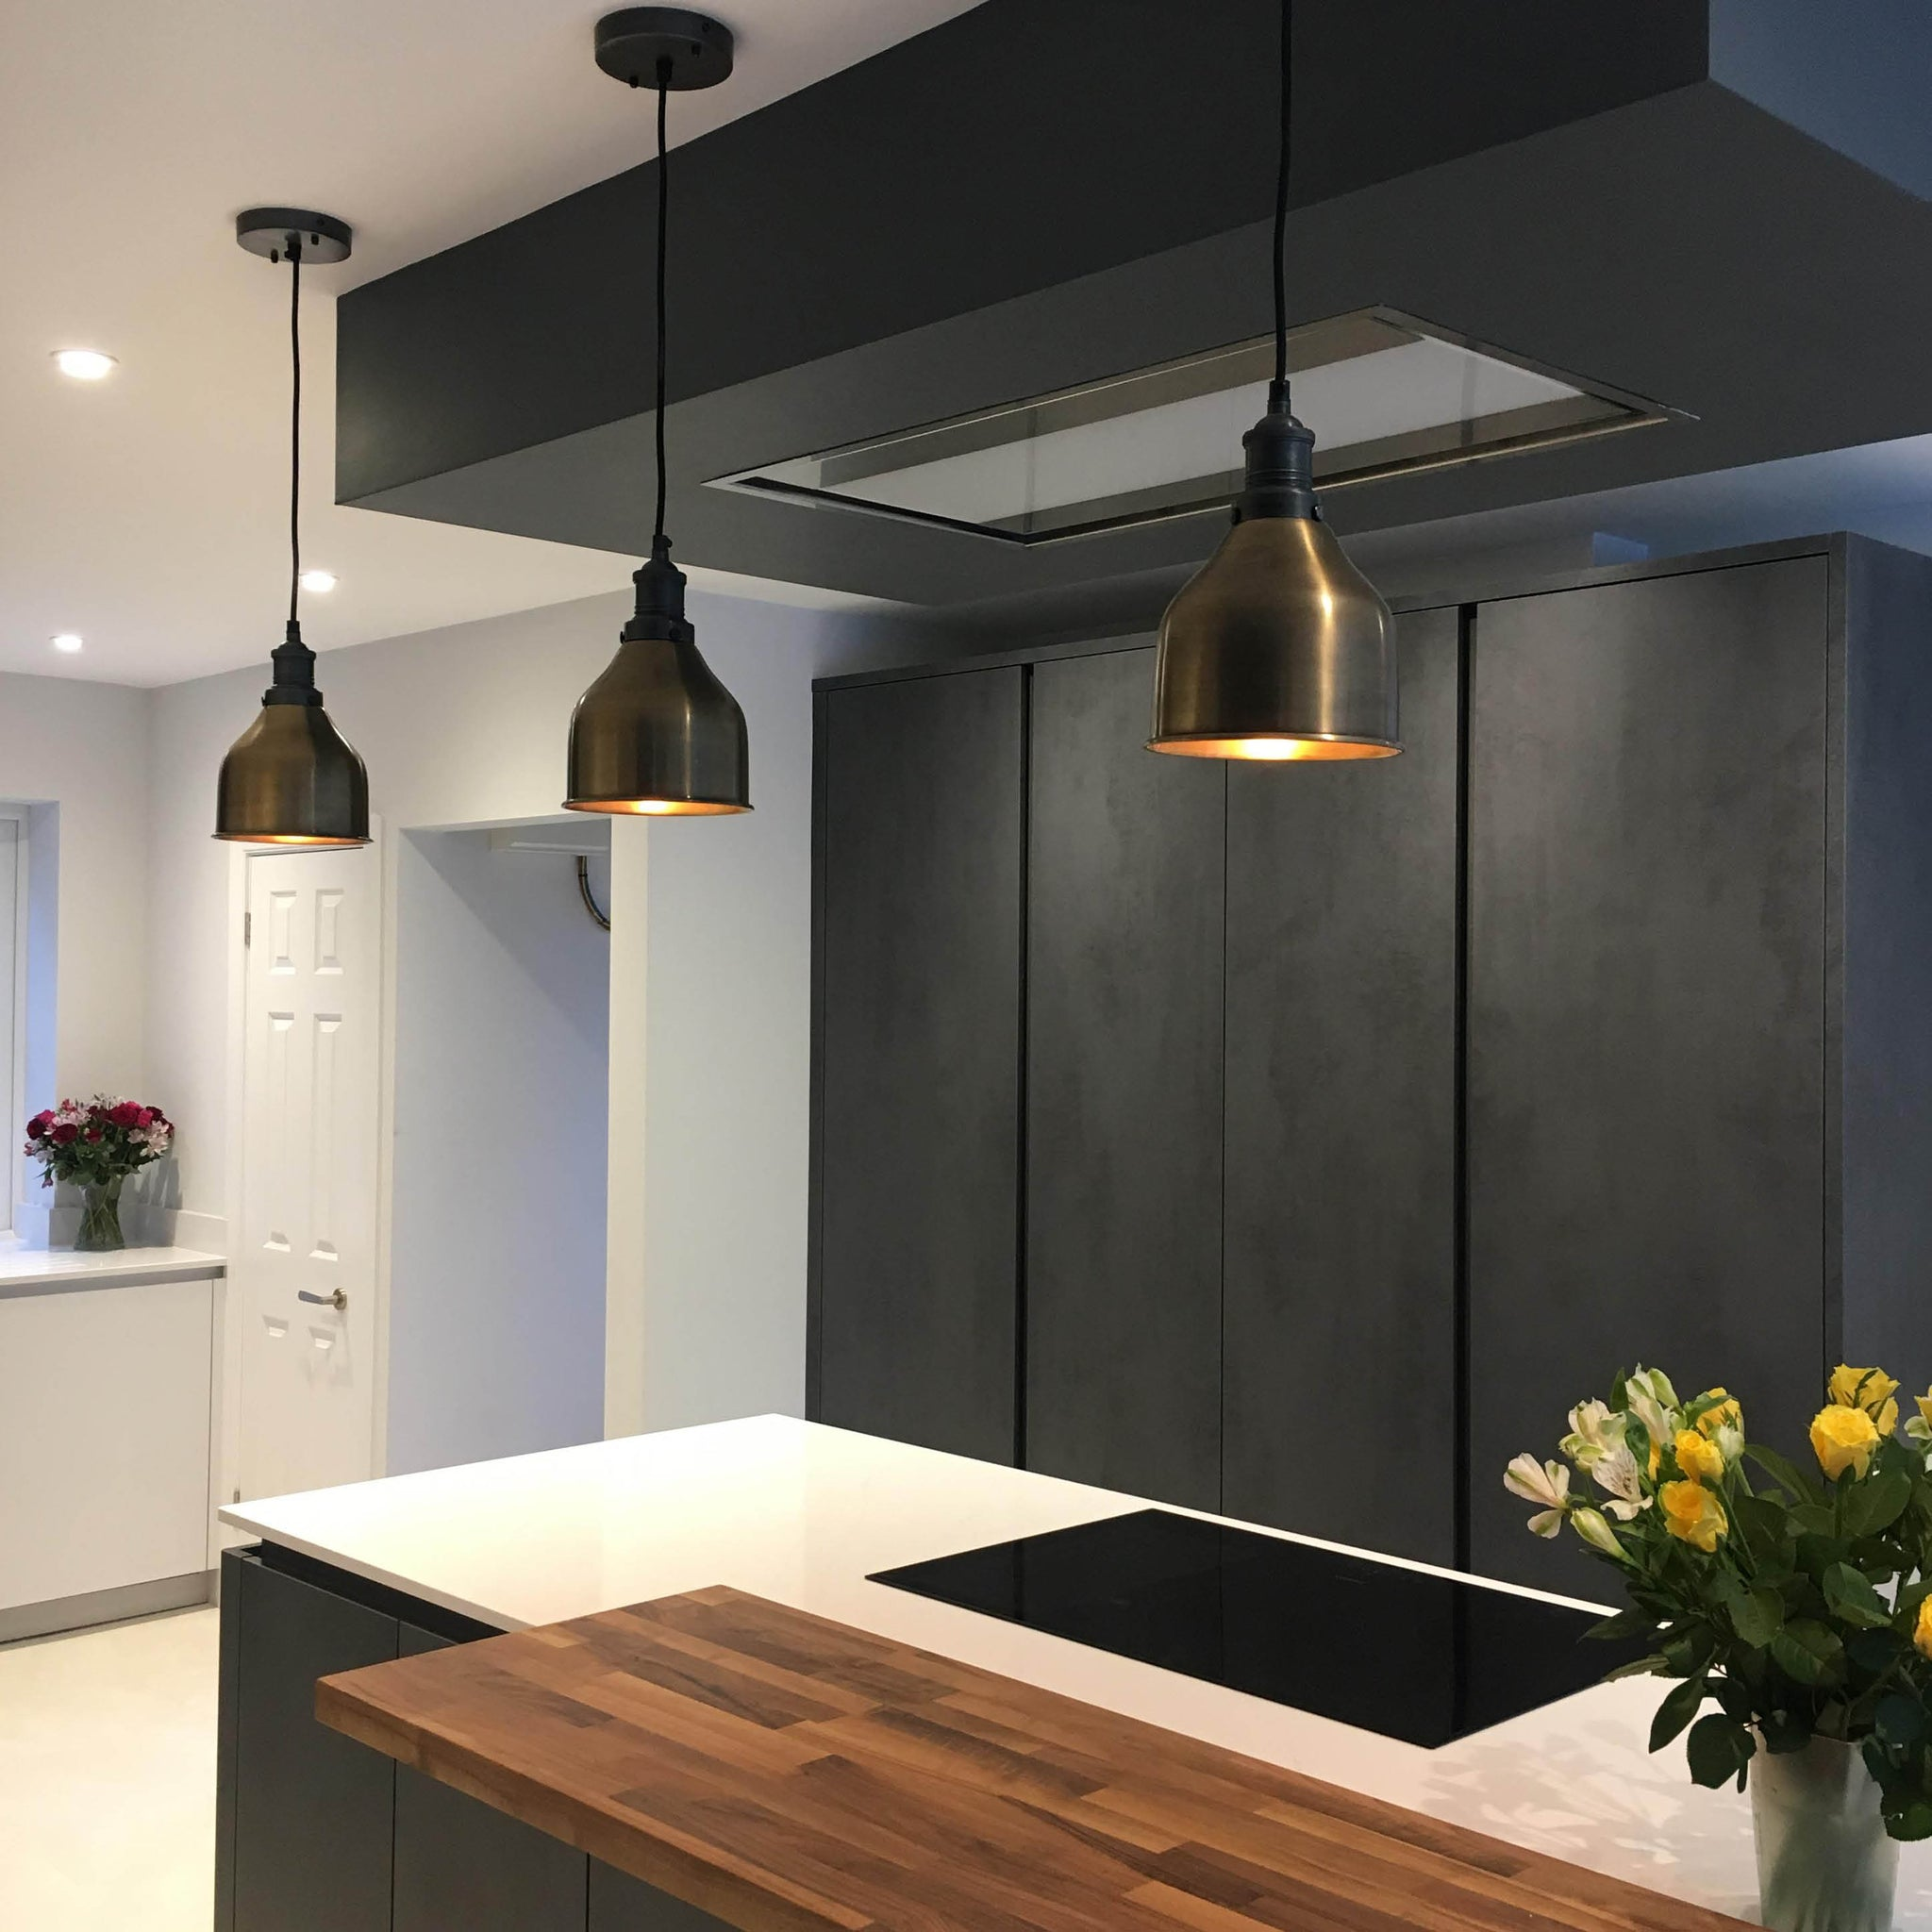 Dark kitchen interior with industrial lights over kitchen island